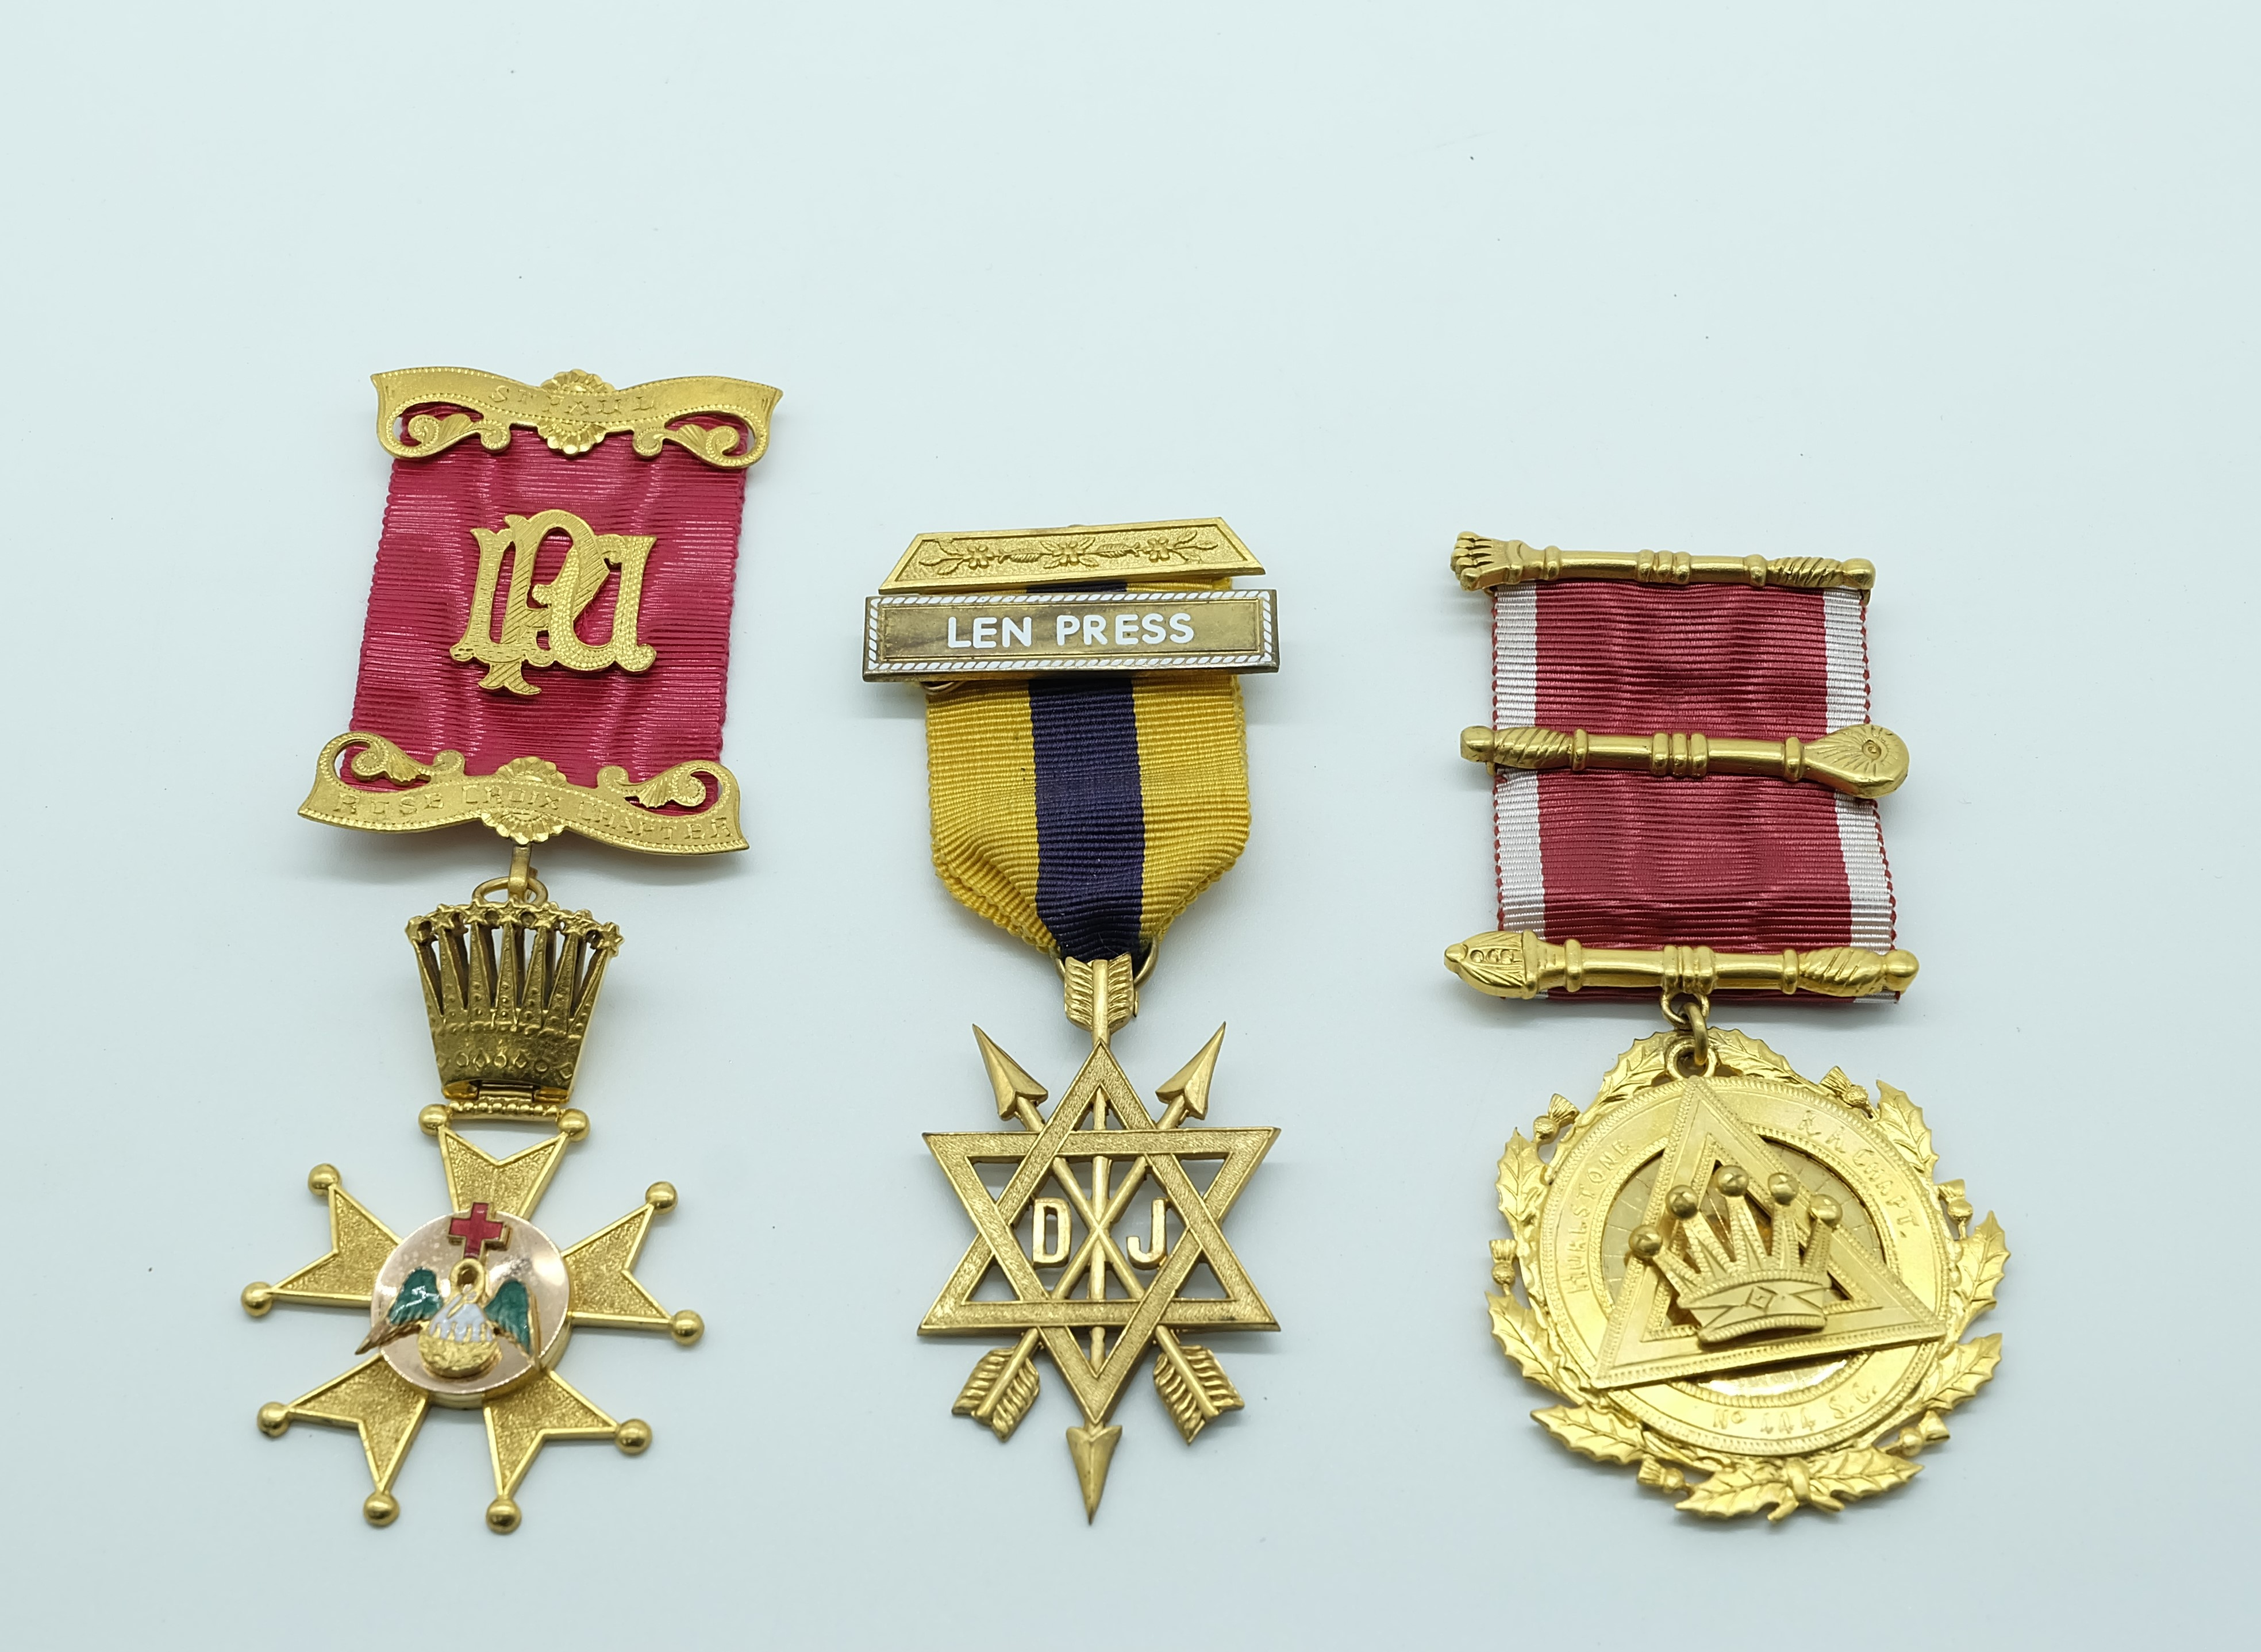 Three Masonic Medals